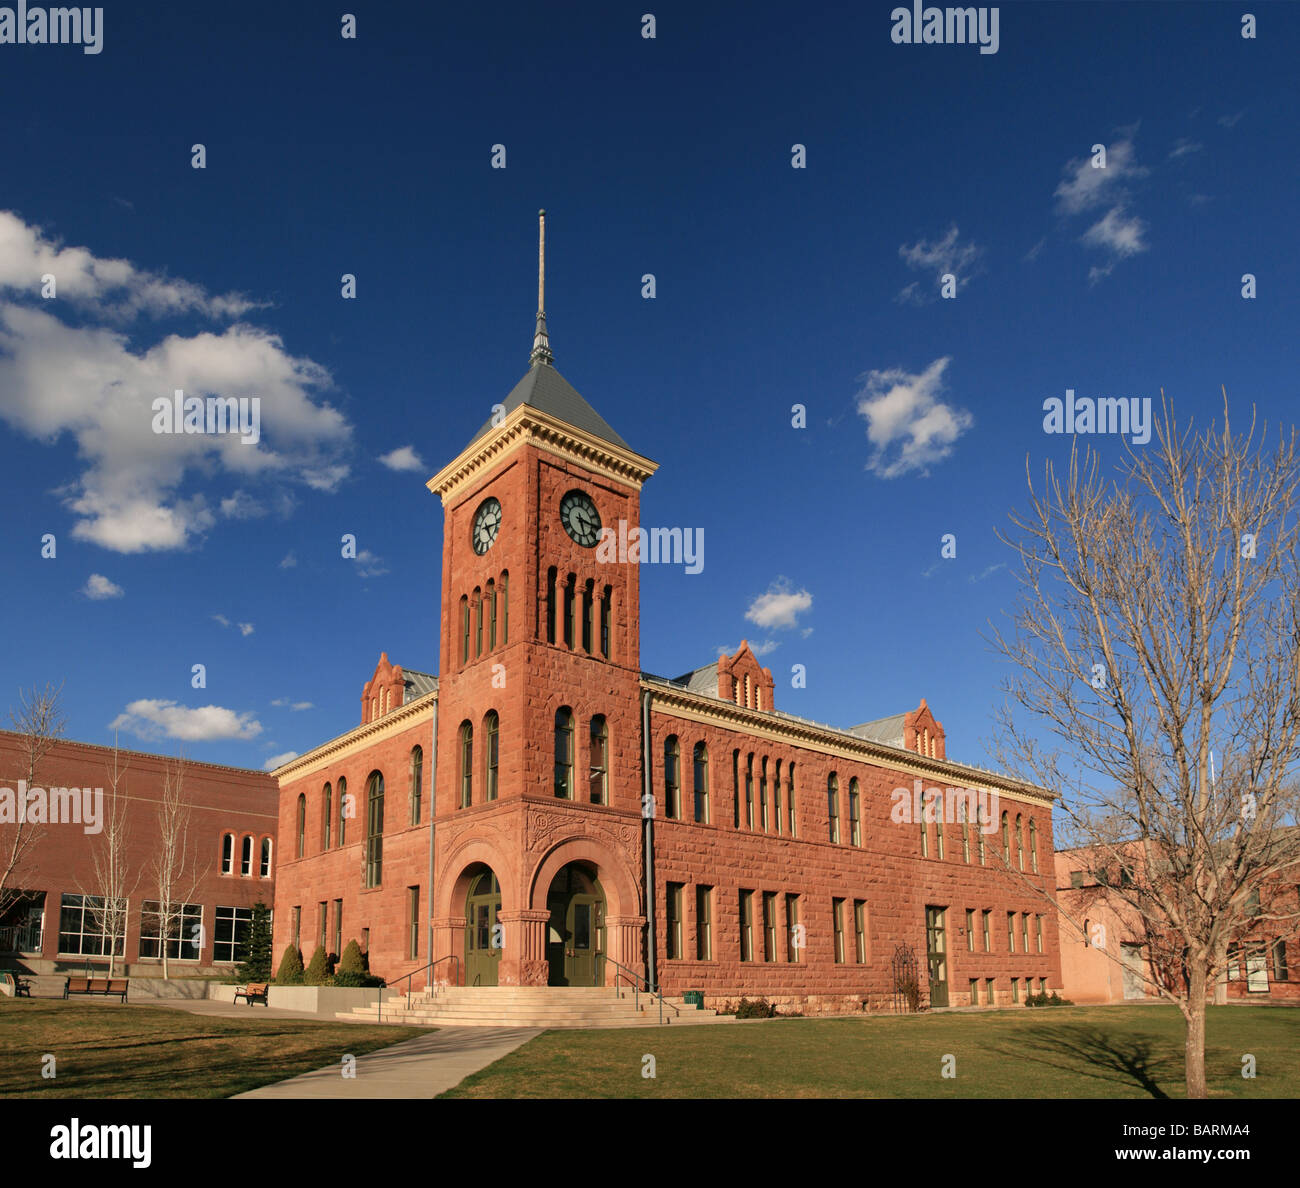 the old 1894 Flagstaff sandstone courthouse - Stock Image